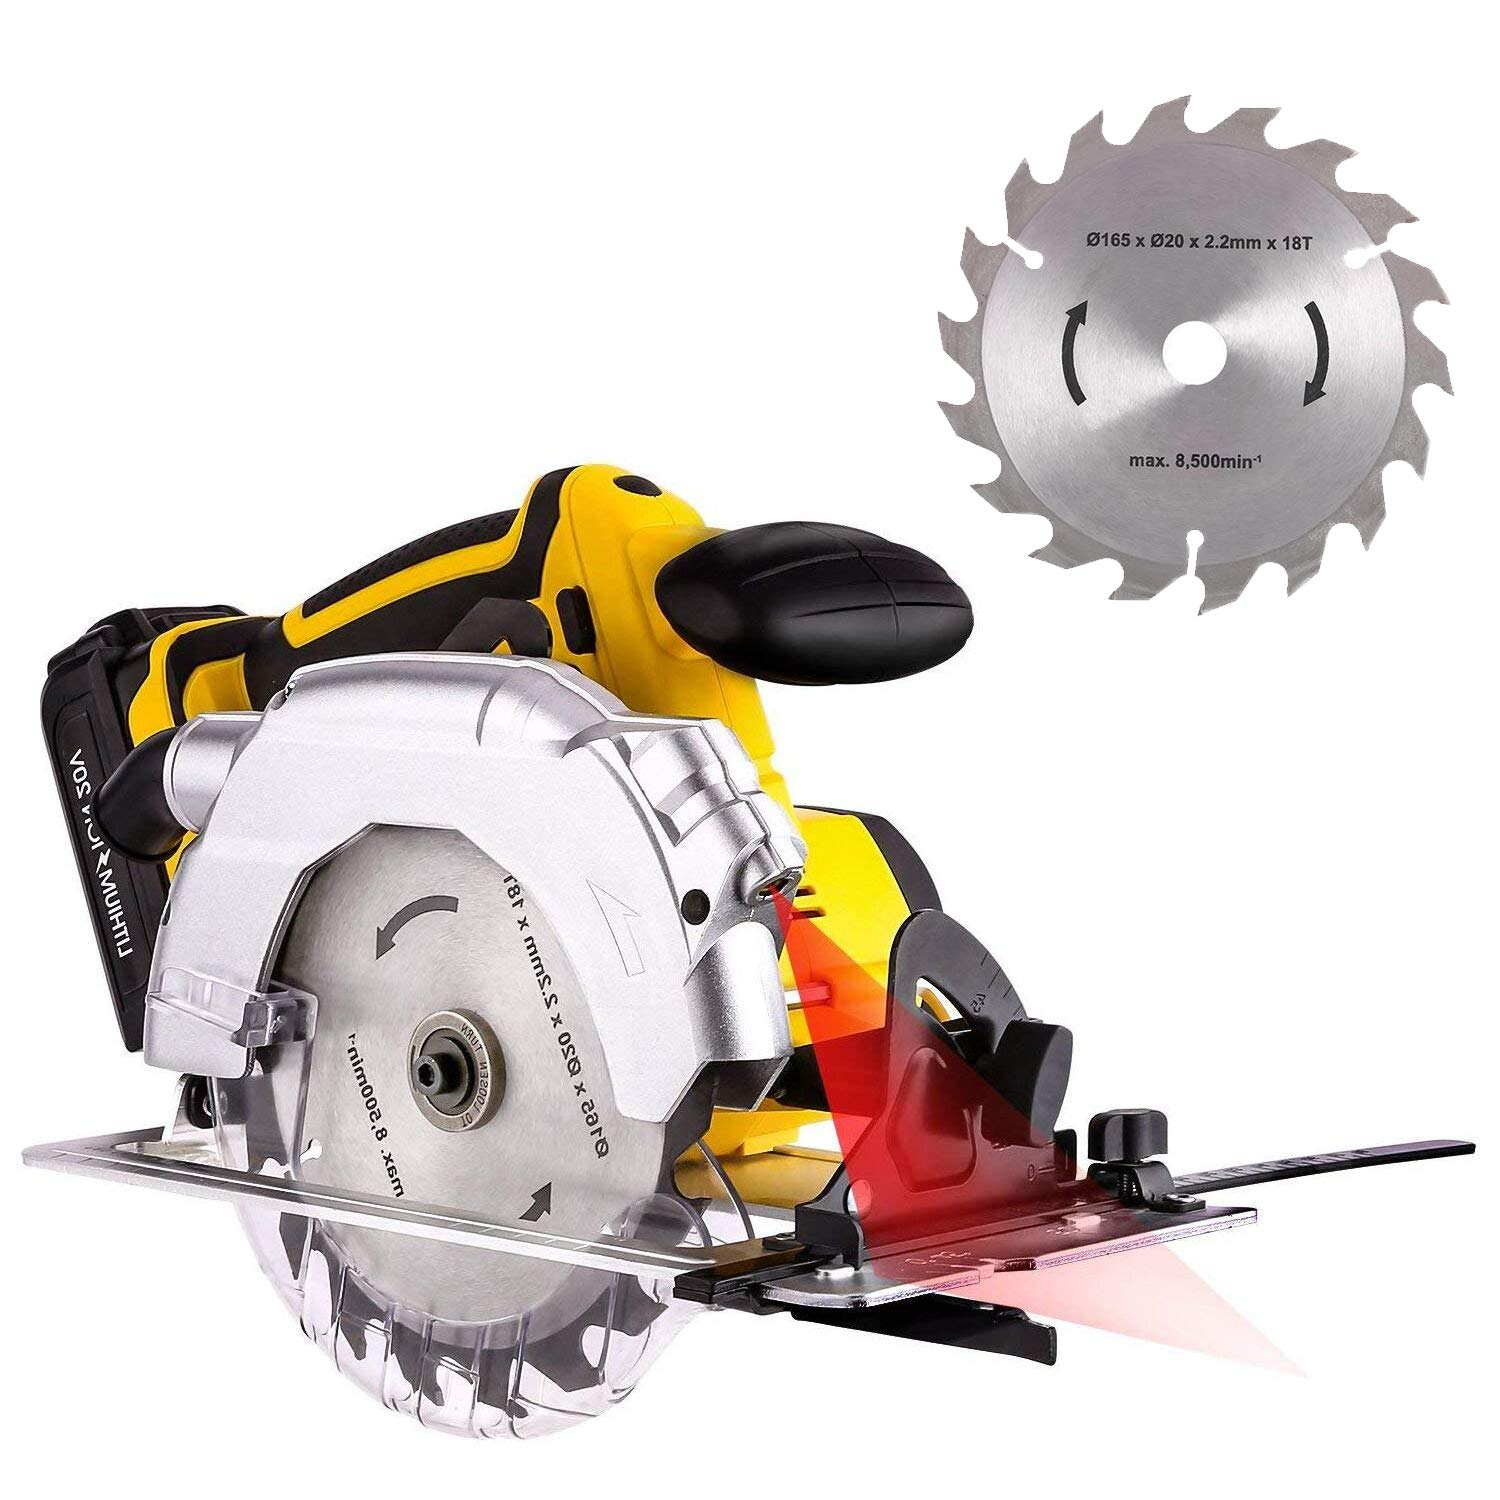 20V 165mm Wood Cutting Tools Cordless Circular Saw with Brake, Spindle Lock Laser, Protection Board Bevel, Guide and Carbide-Tipped Blade [US STOCK]